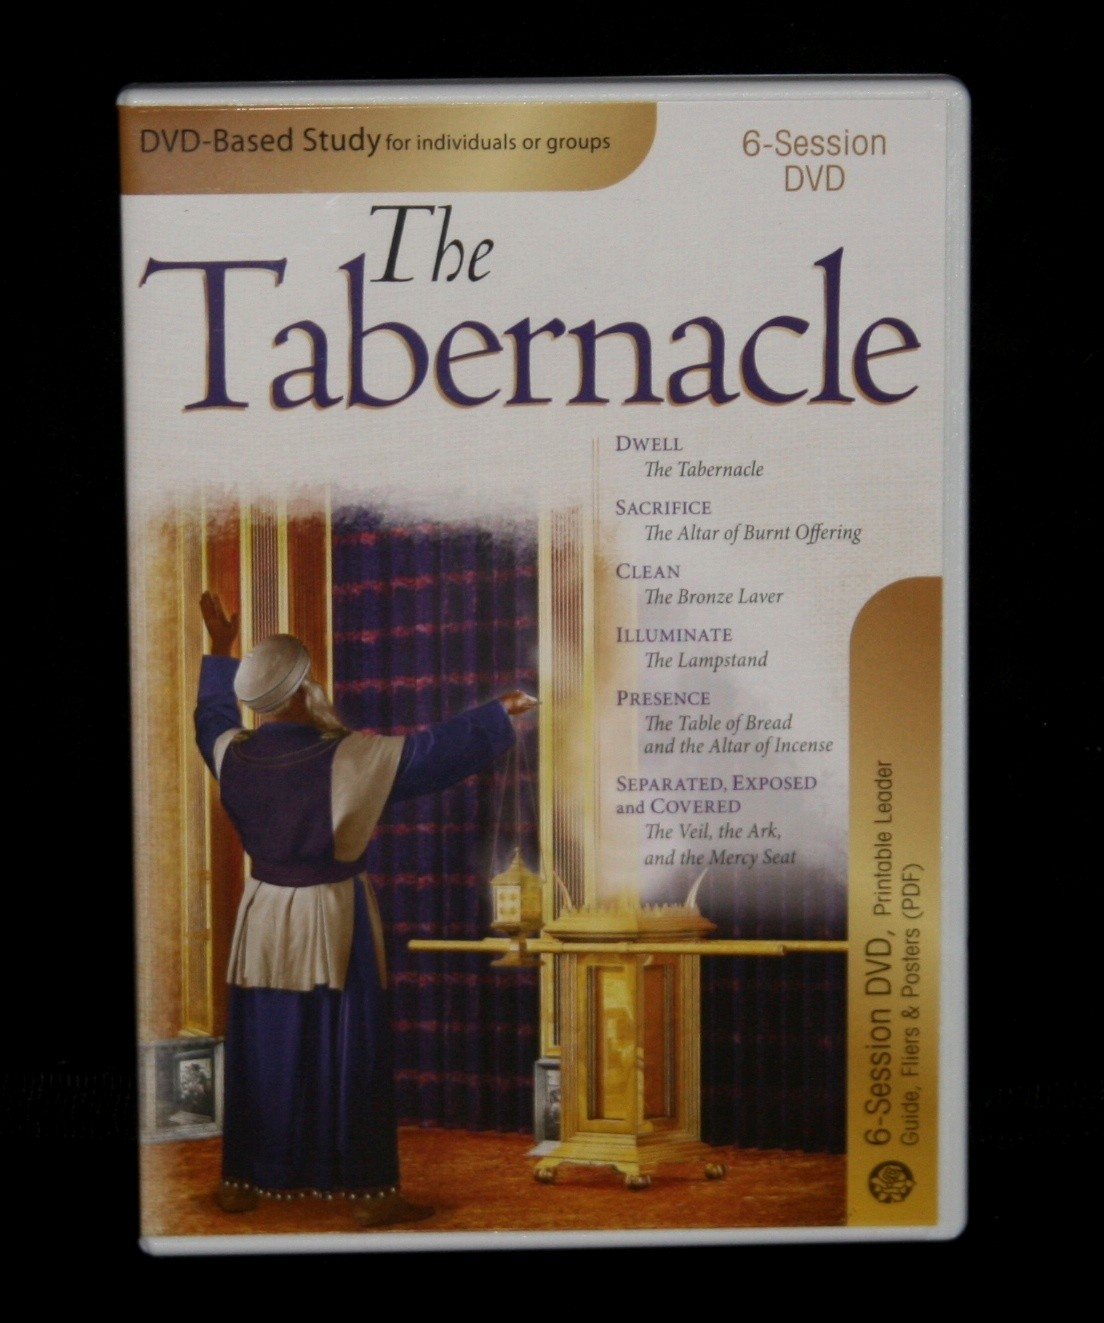 The Tabernacle Review